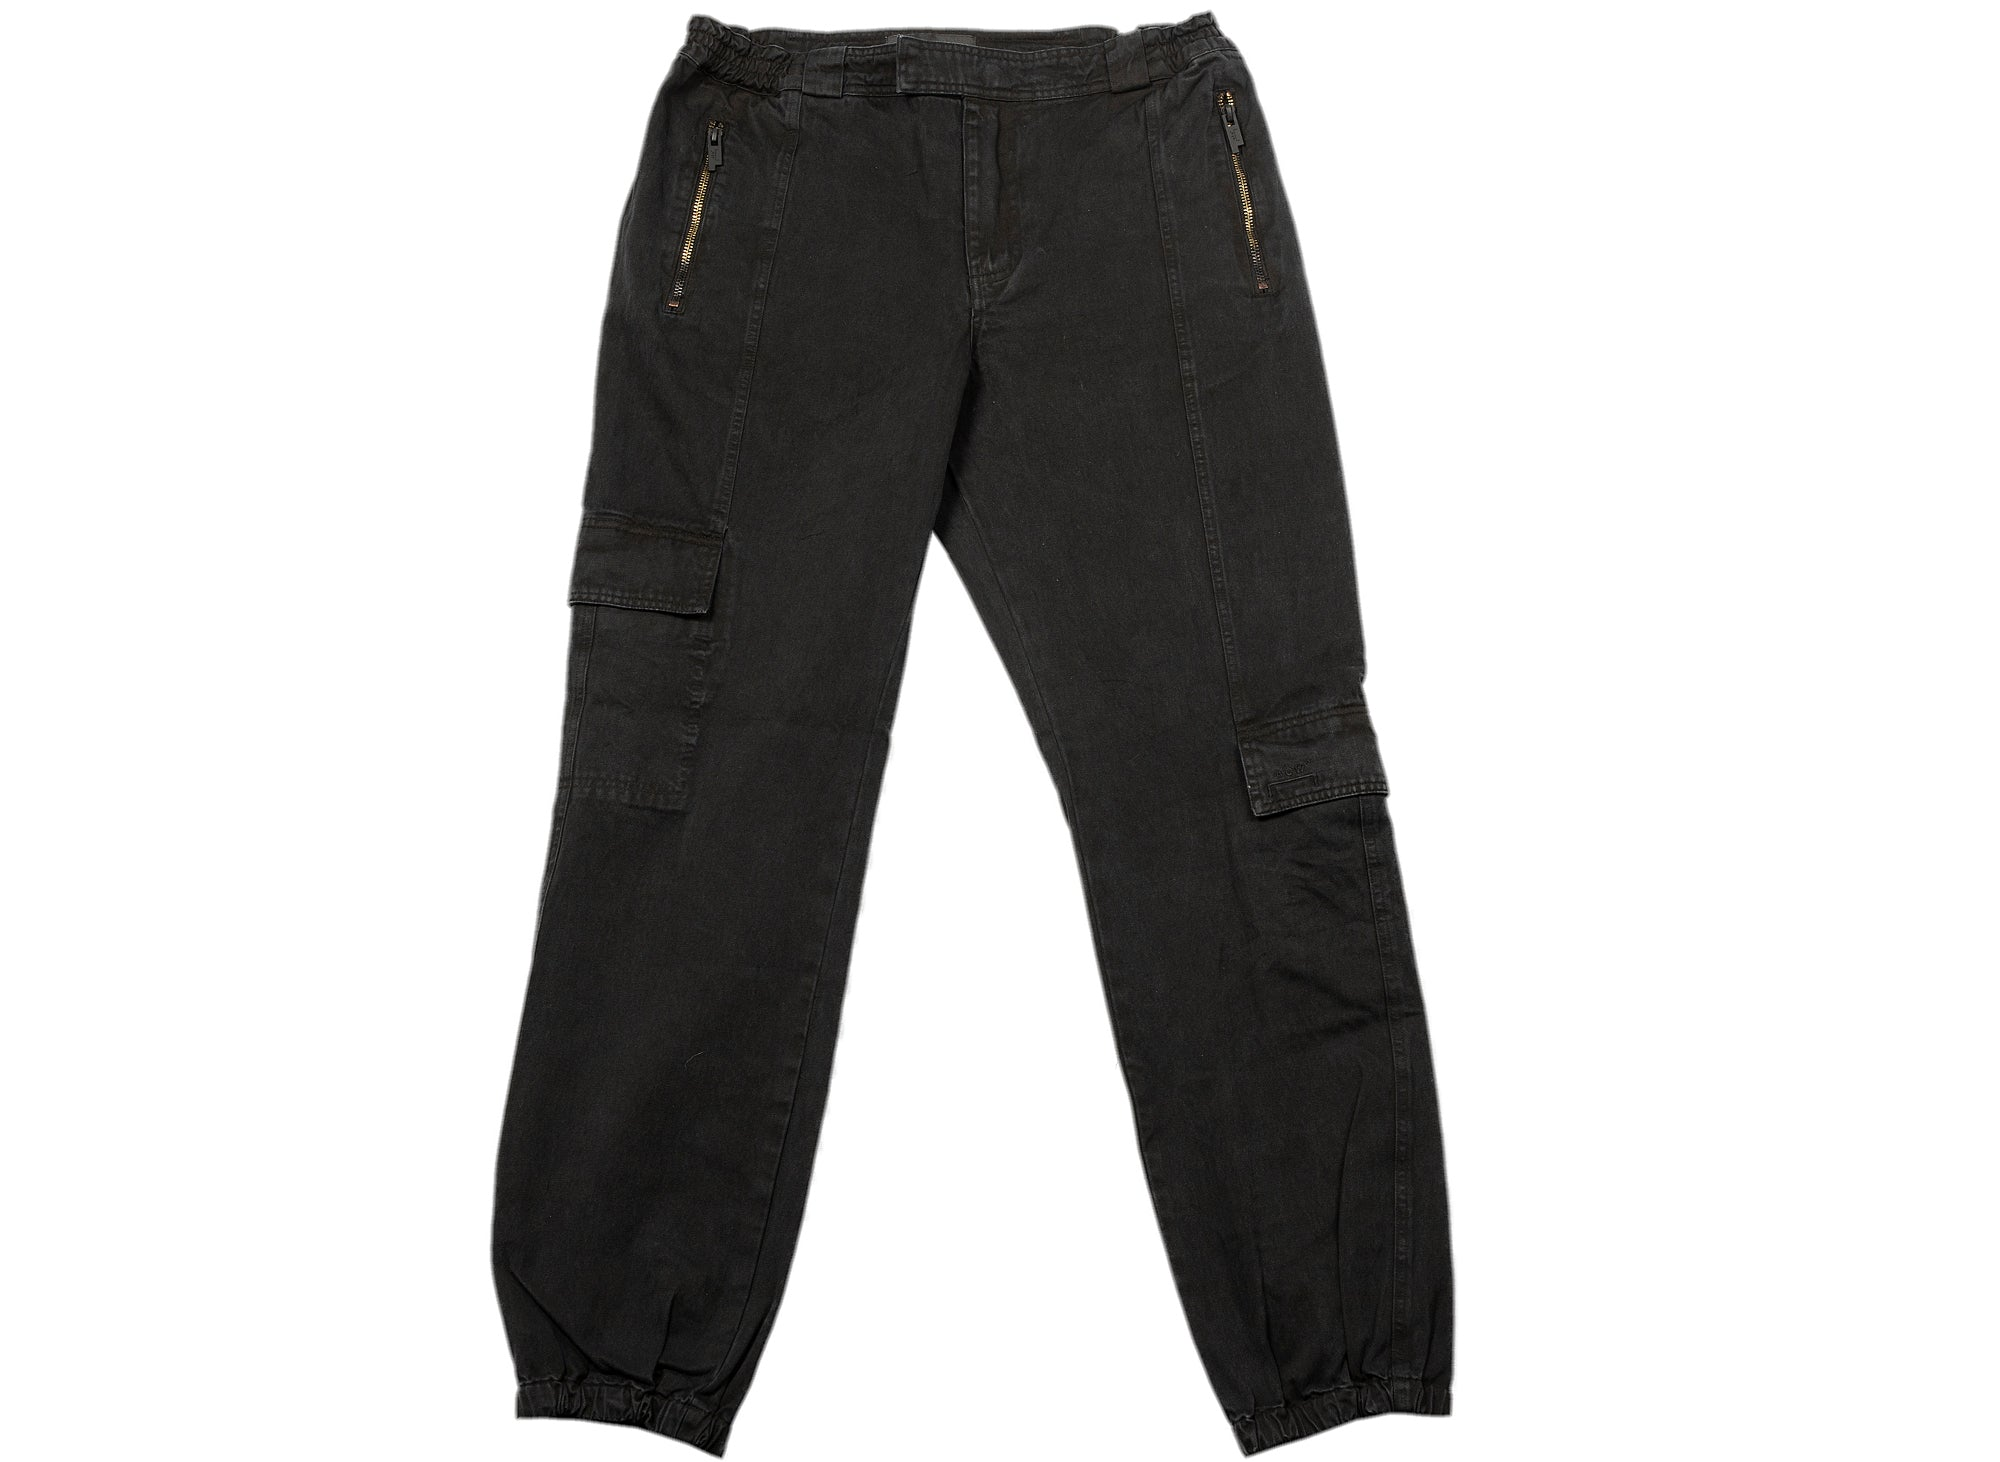 A-COLD-WALL* Memory Cargo Pants in Black xld